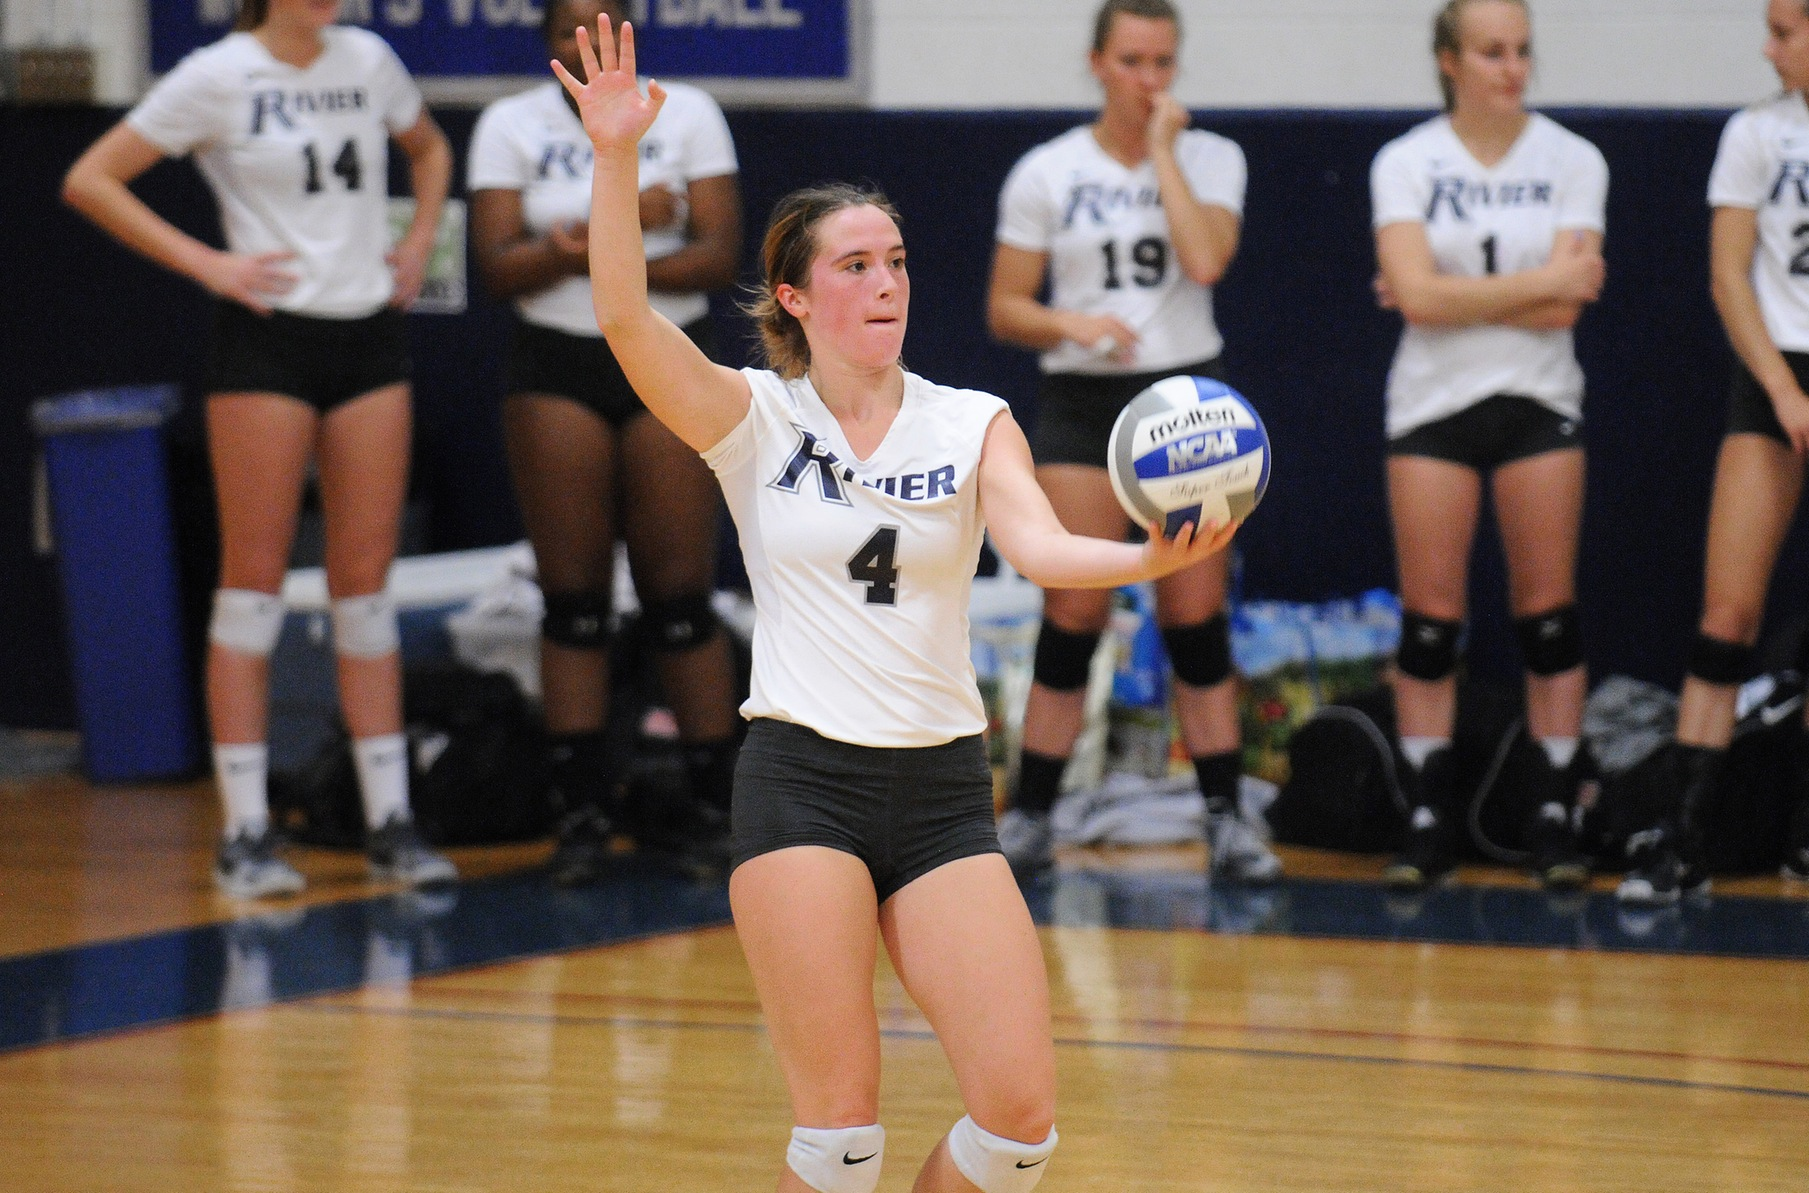 Women's Volleyball: Dunster's 18-kill effort leads Raiders past Lions 3-0